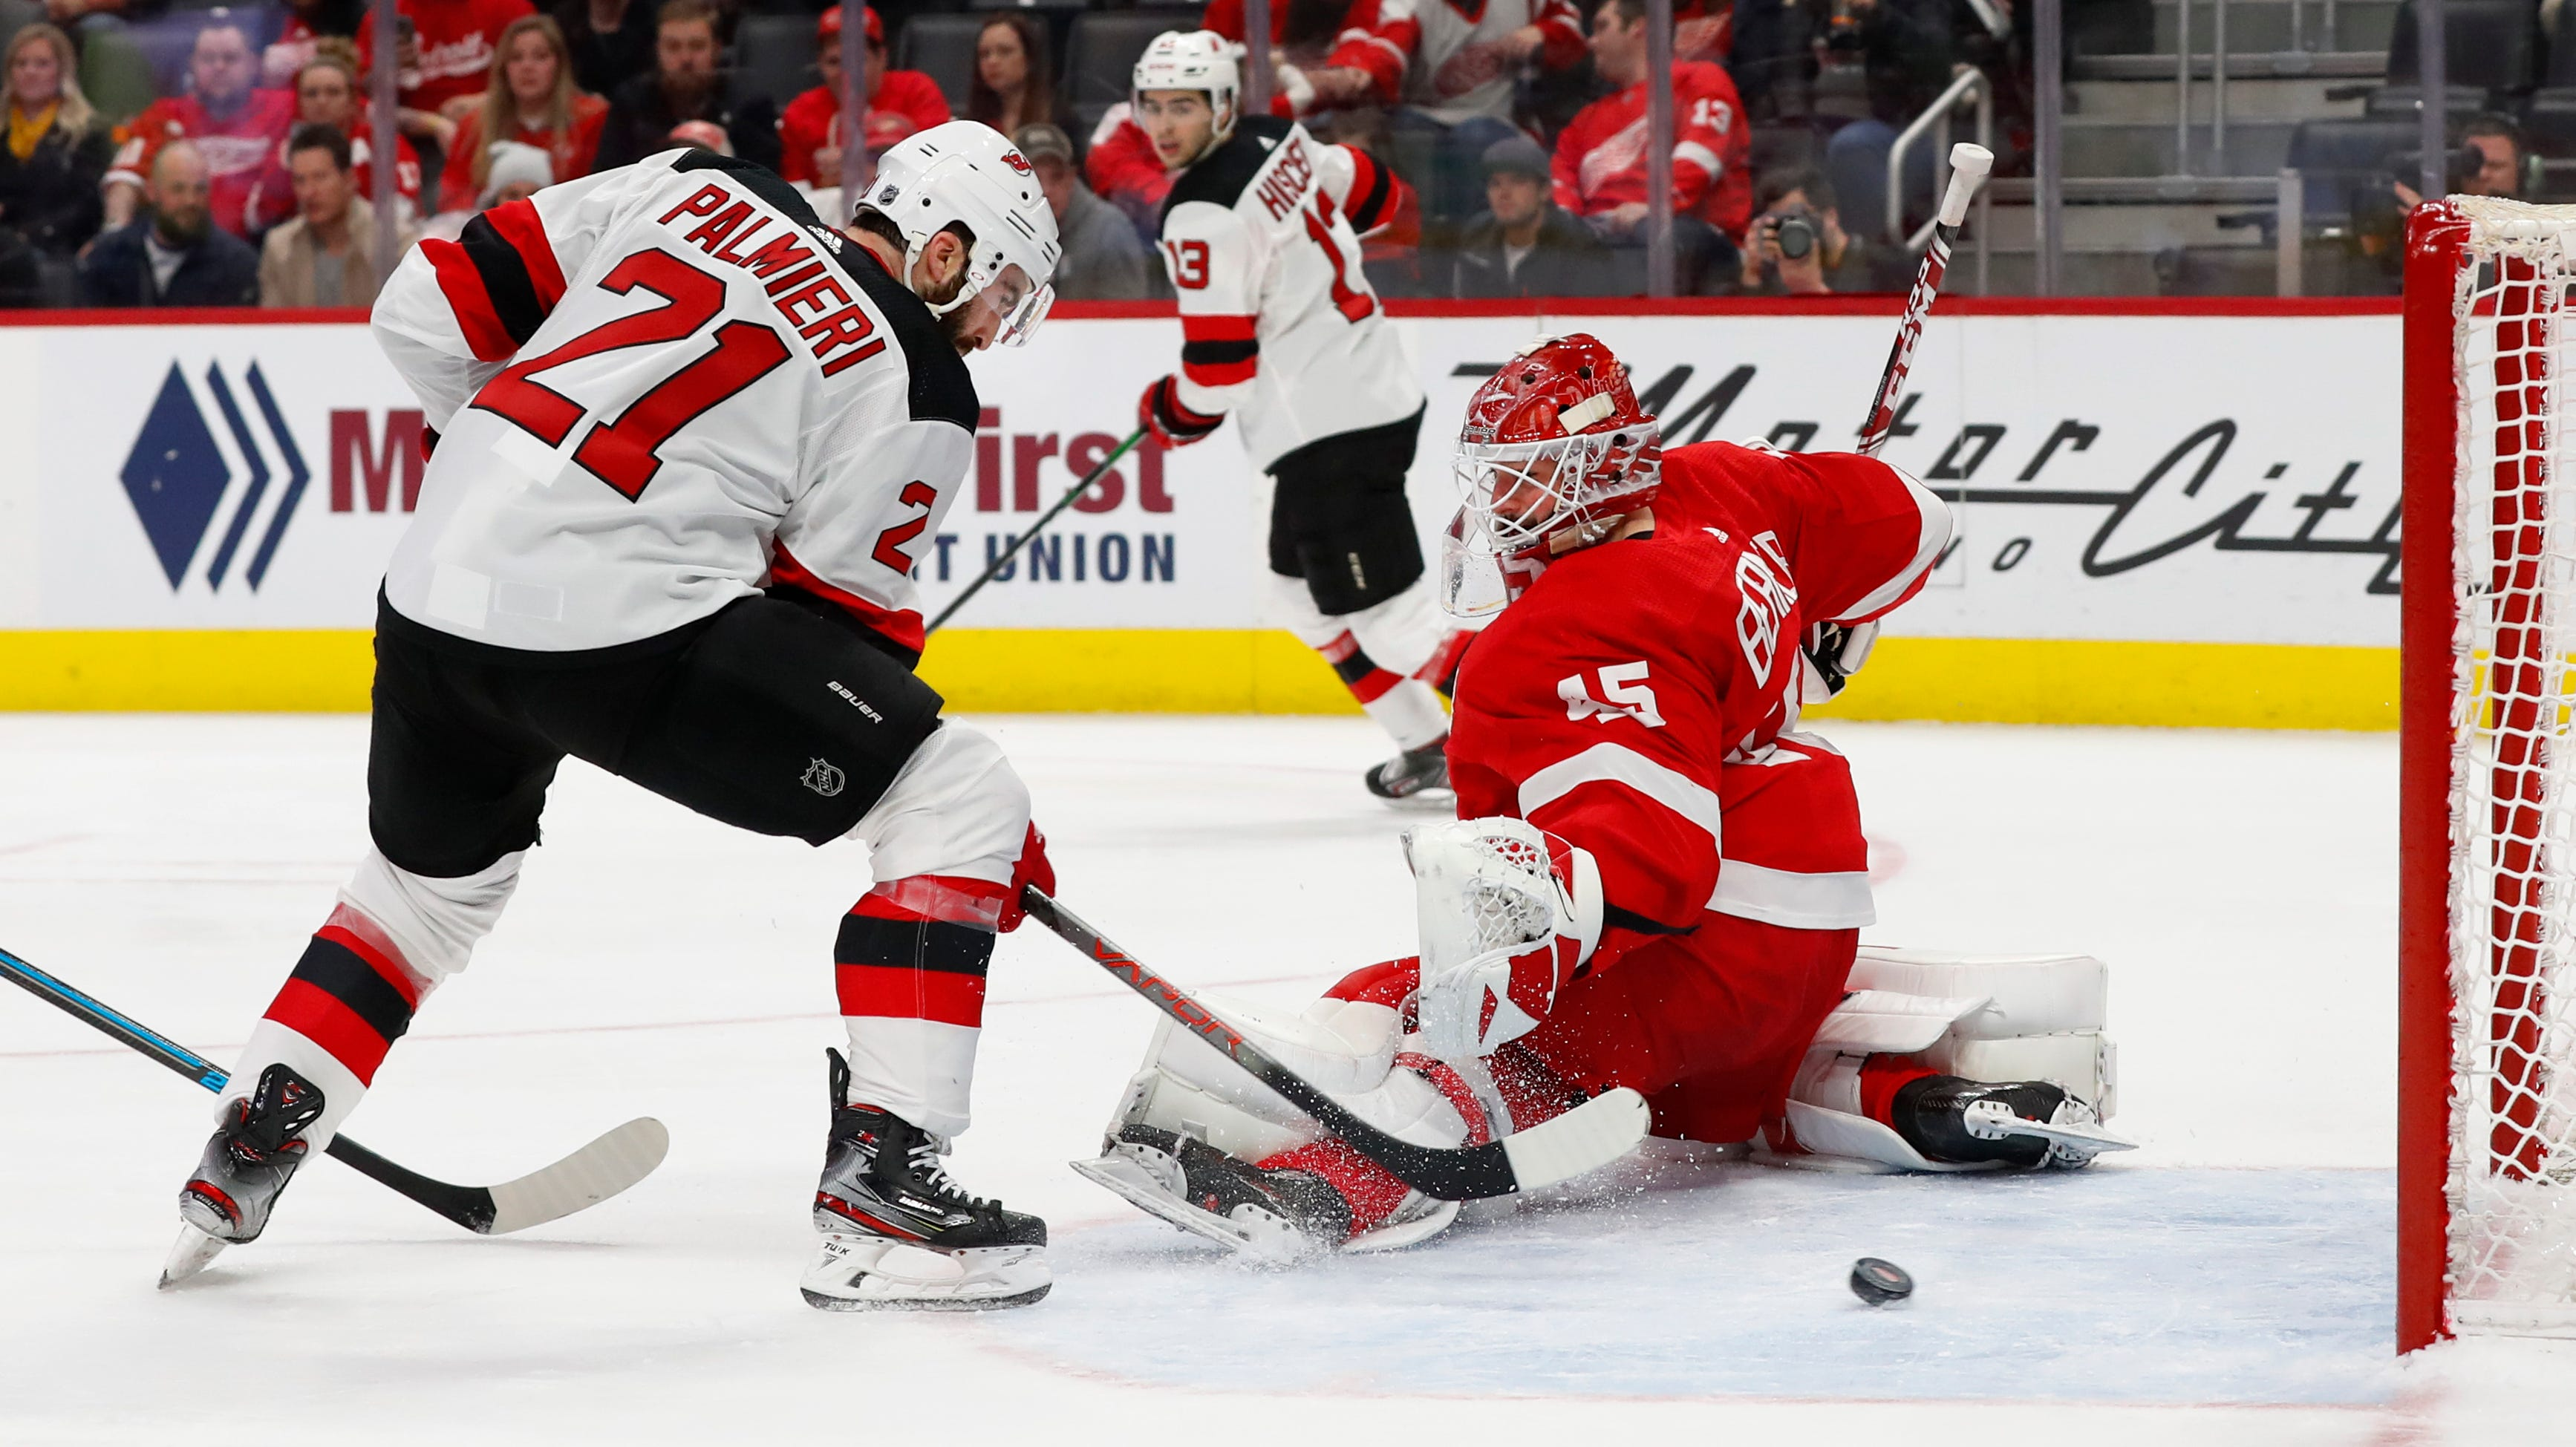 New Jersey Devils 4, Detroit Red Wings 1: Photos from the game